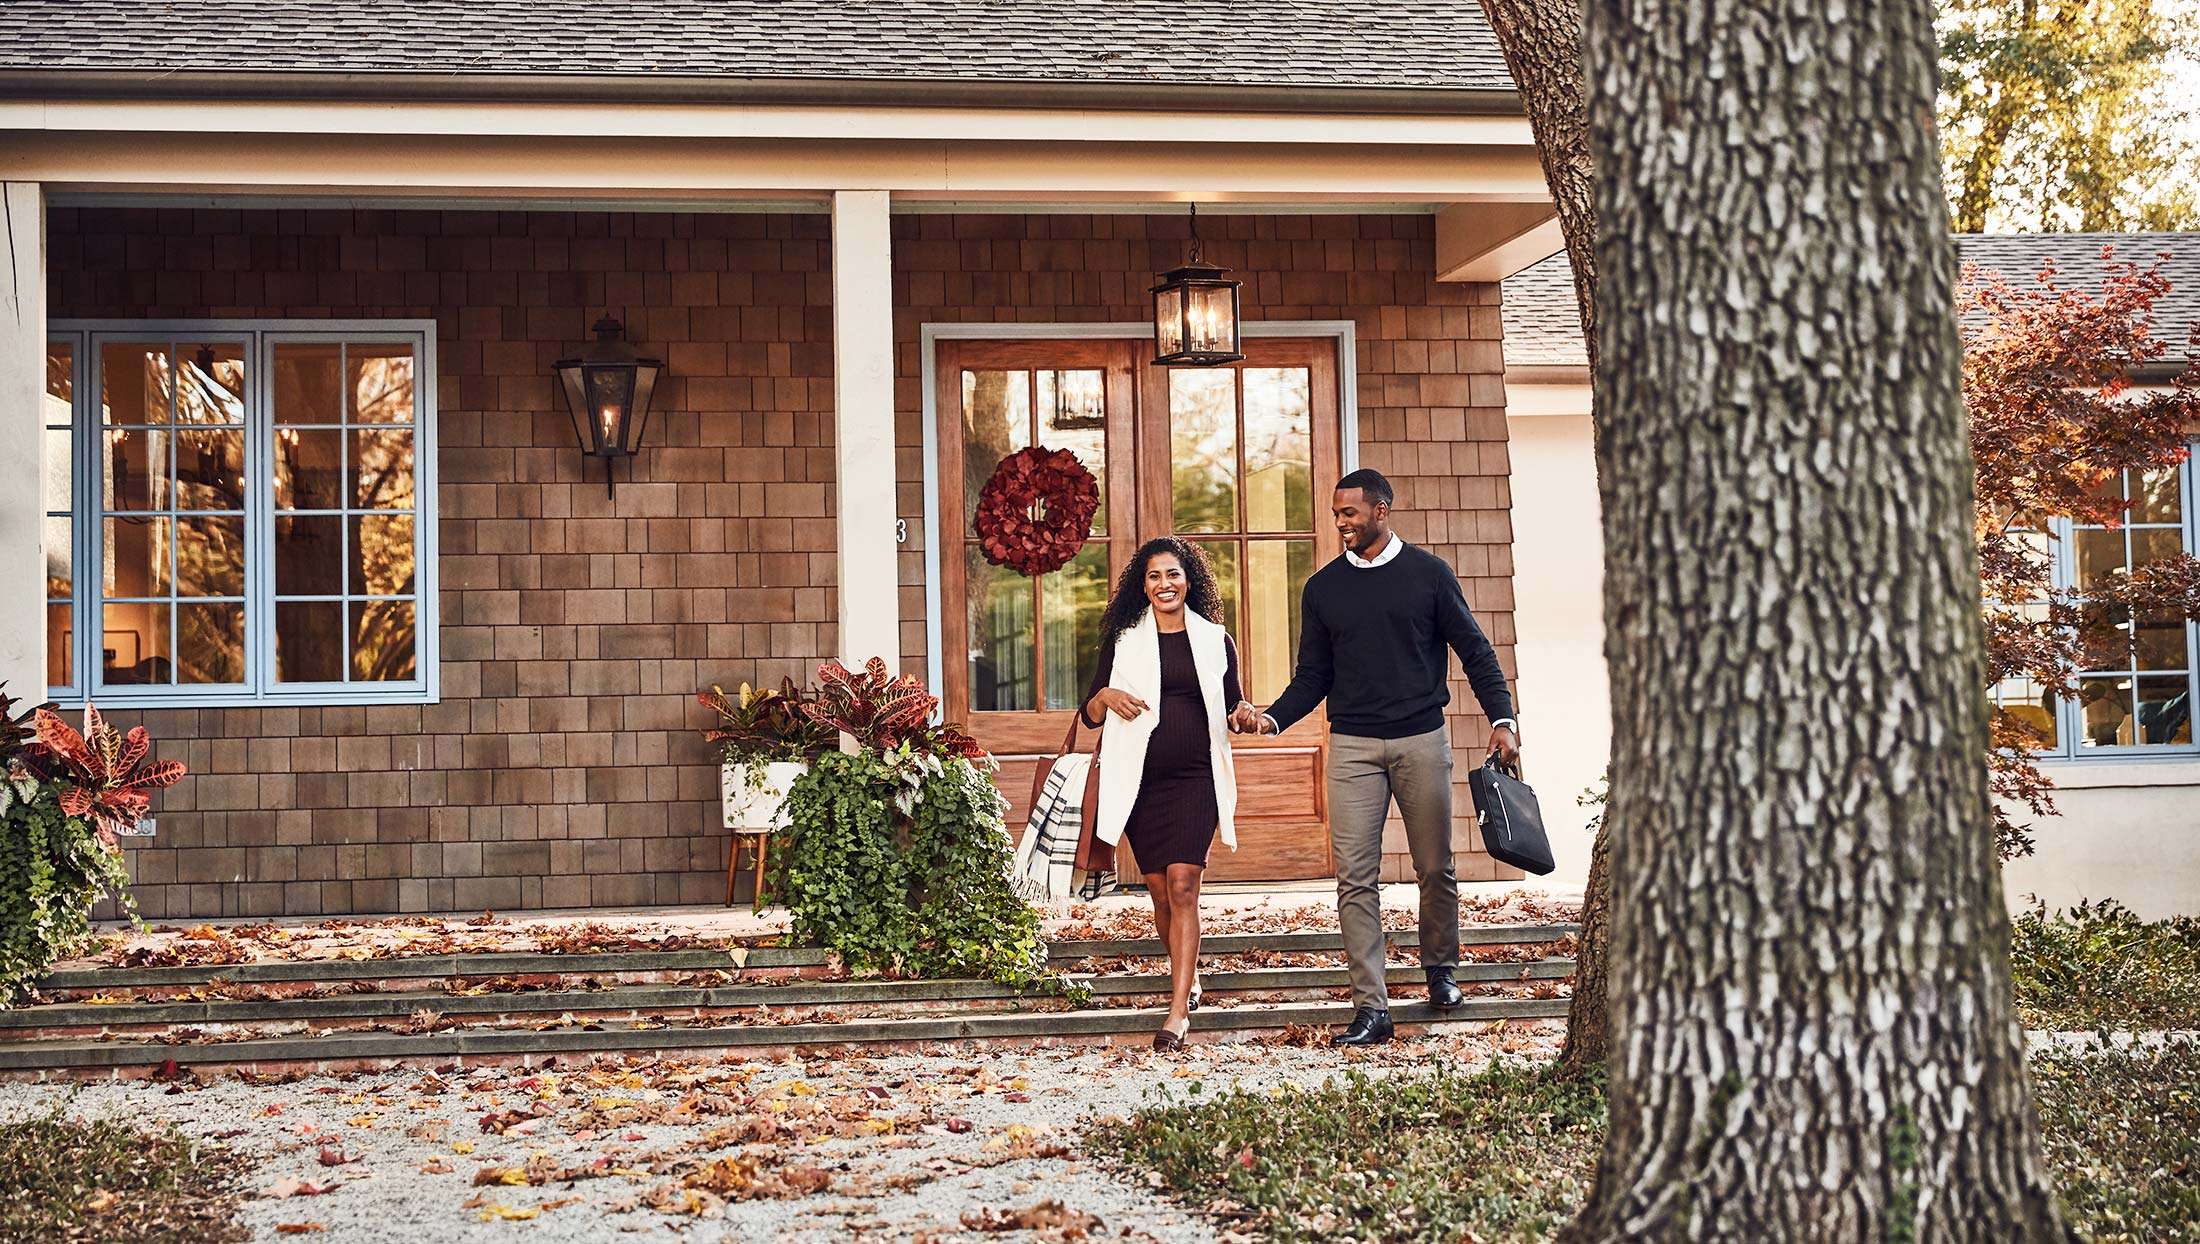 CHASE-BANK-Front-Door-Couple-Autumn-2161-2